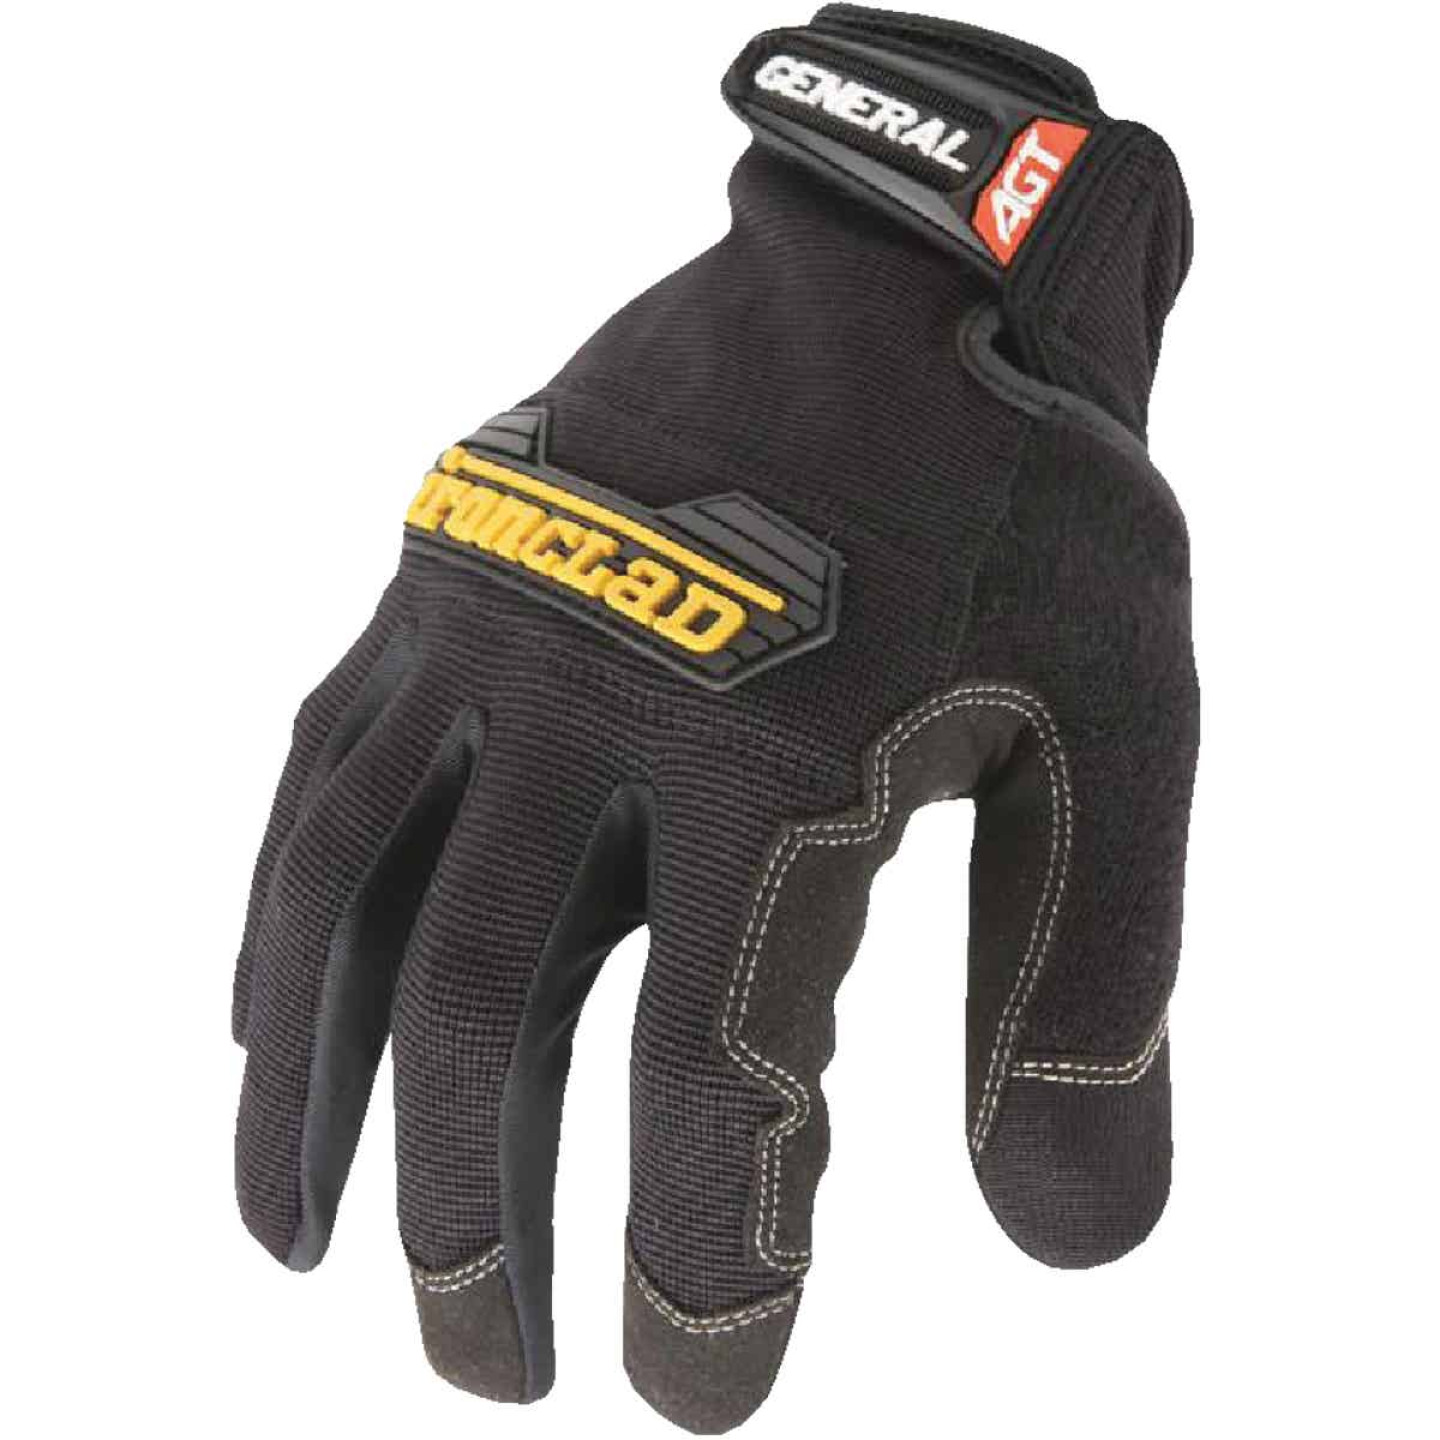 Ironclad General Utility Men's Large Synthetic Suede High Performance Glove Image 4